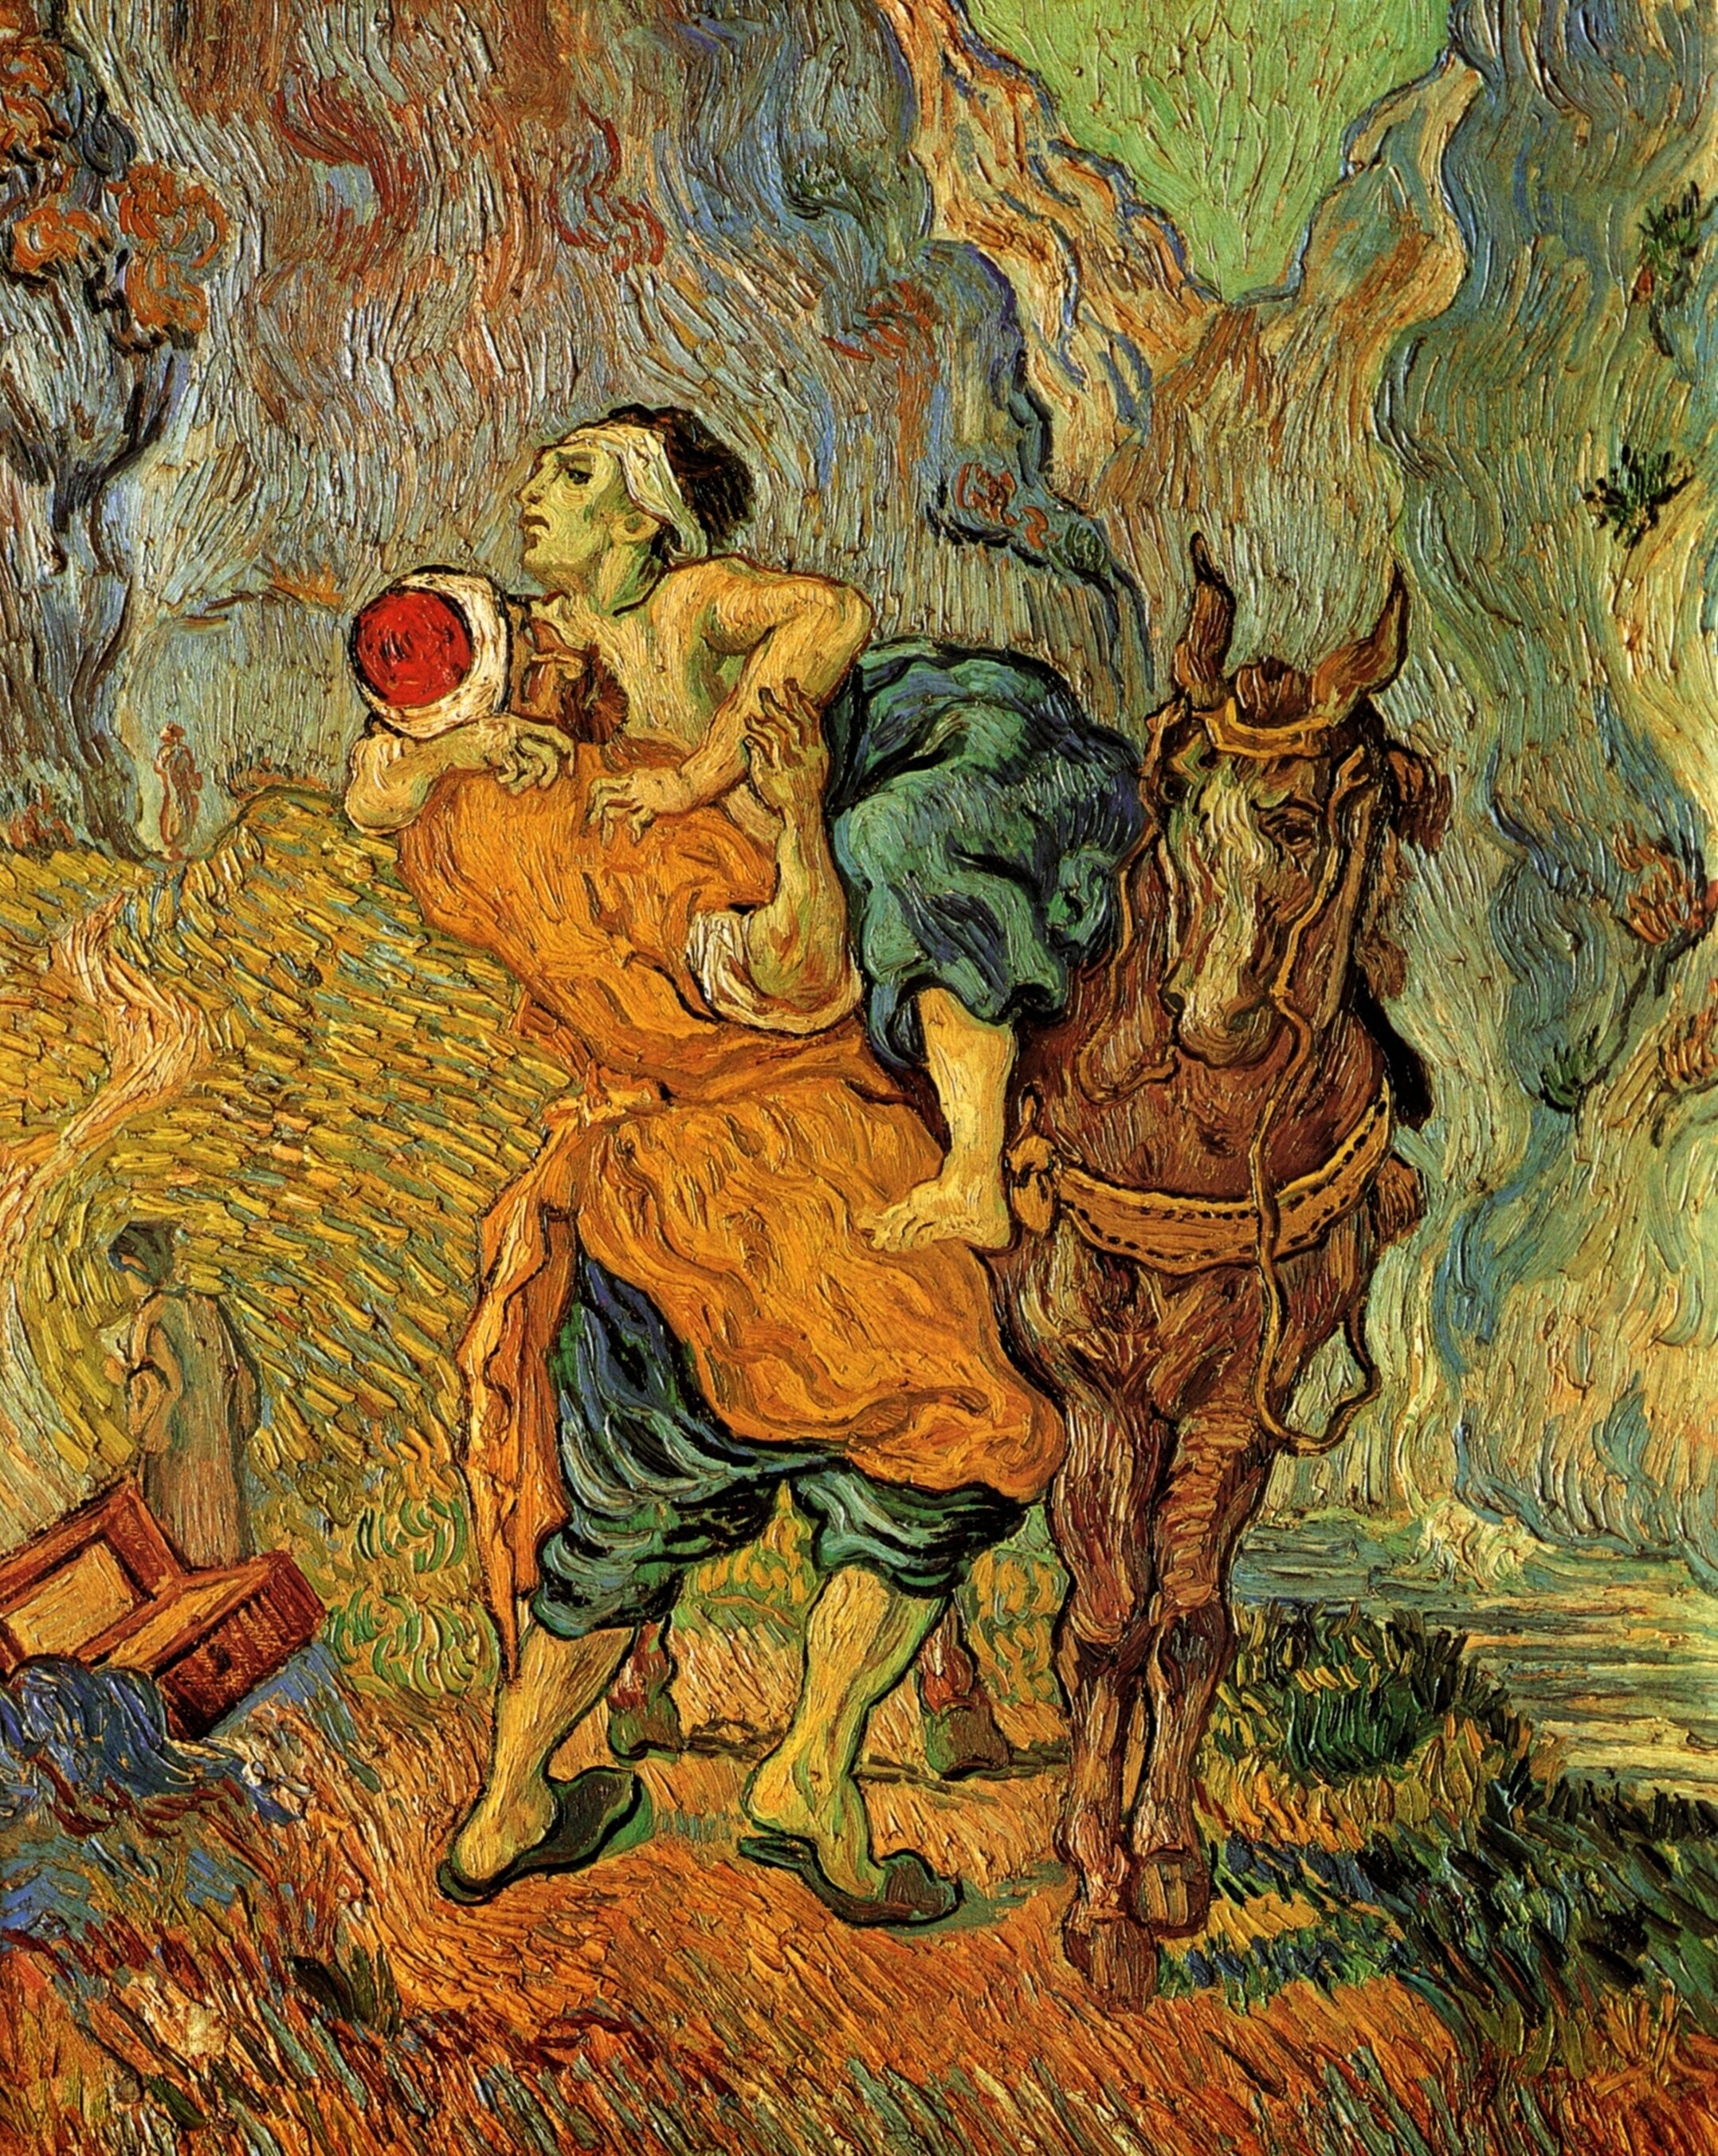 the-good-samaritan-after-delacroix-1890.jpg